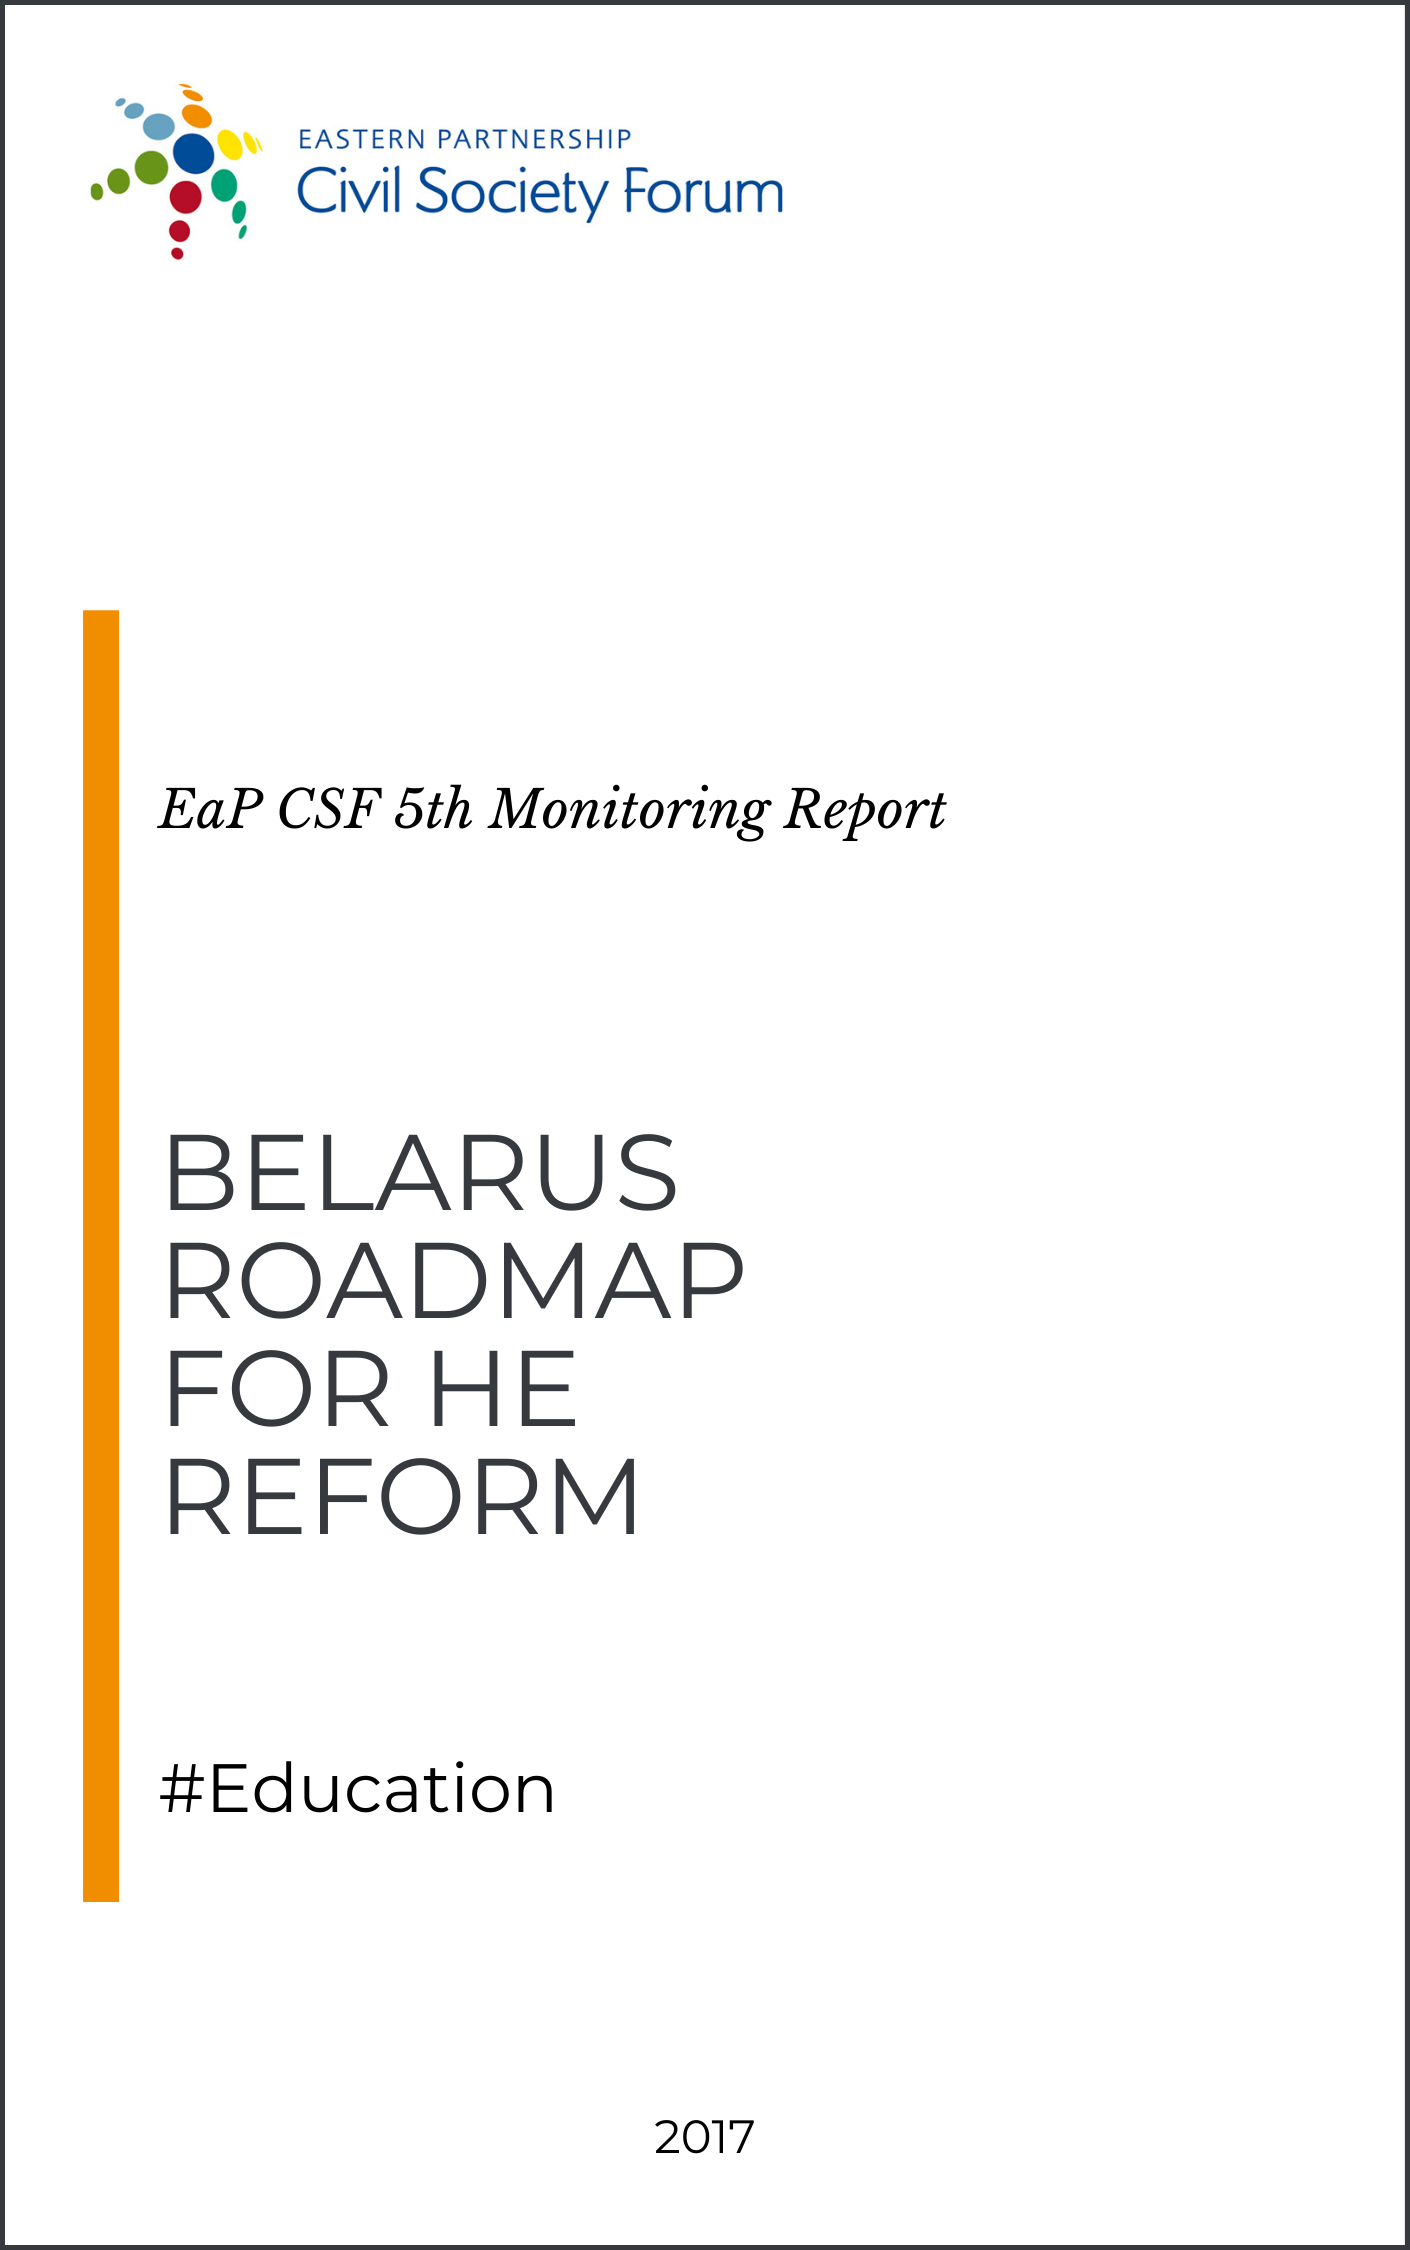 Belarus Roadmap for HE Reform (5th Monitoring Report)